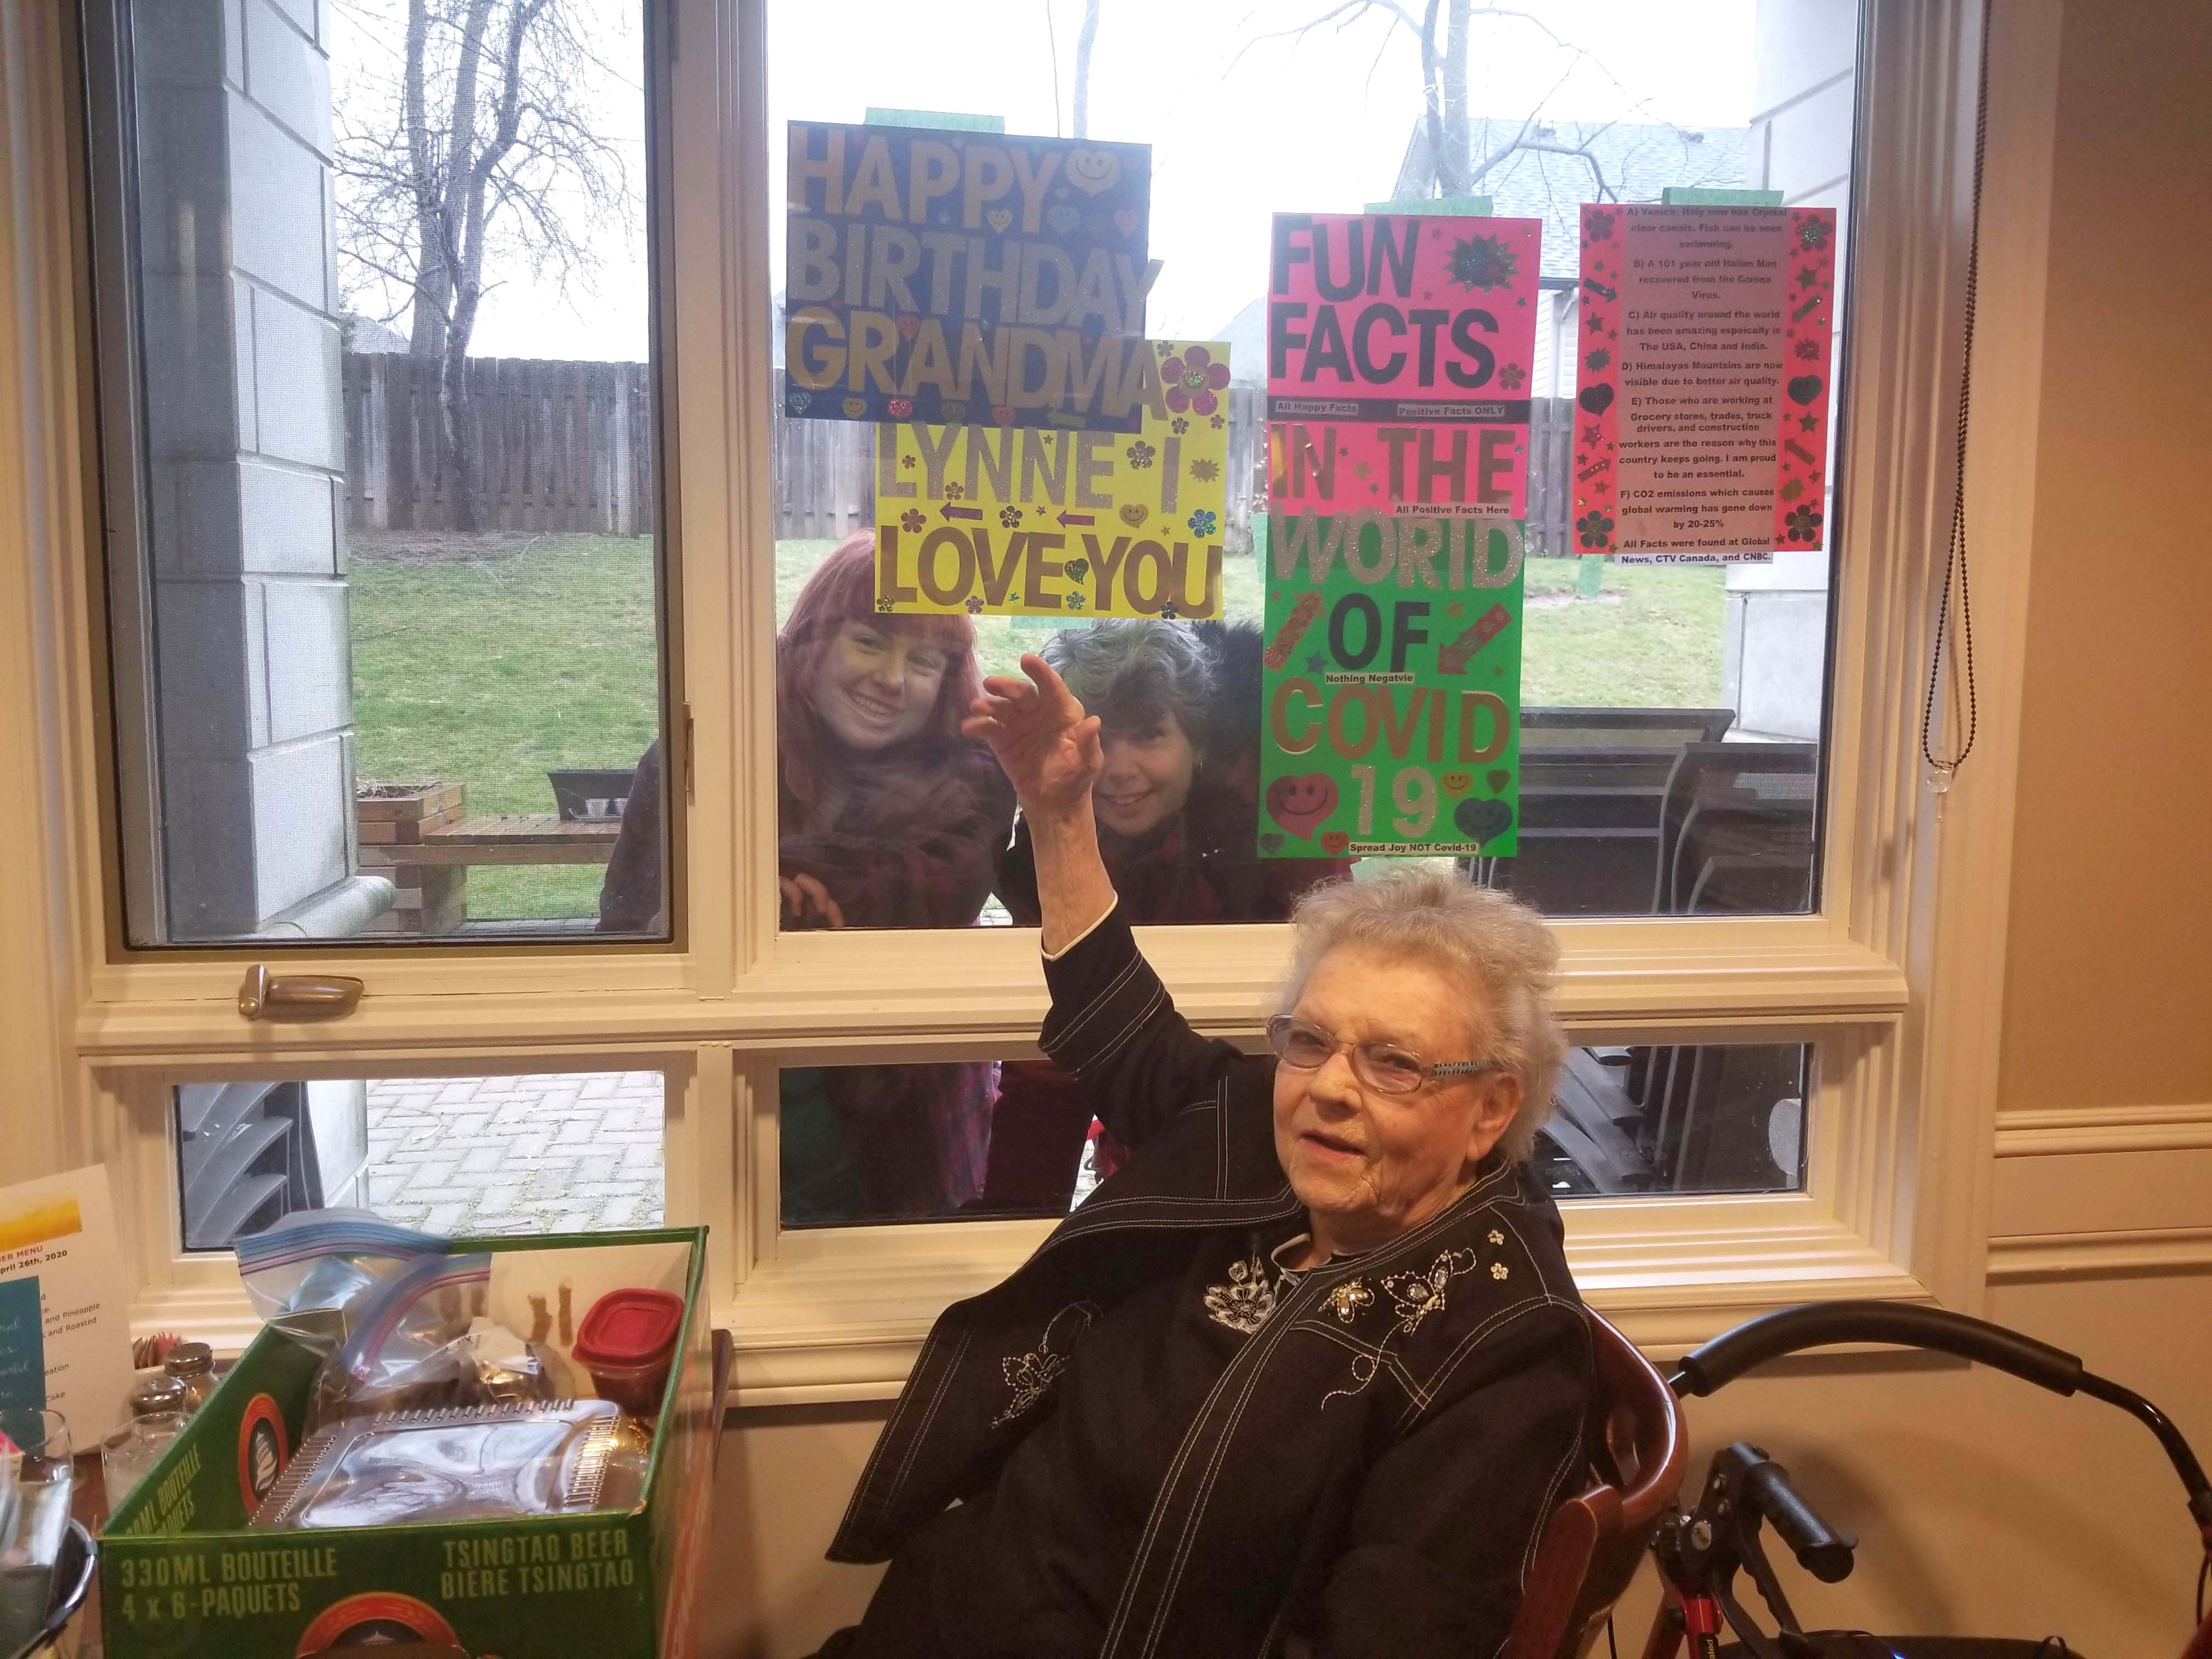 A resident having a window visit with her family to celebrate her birthday.